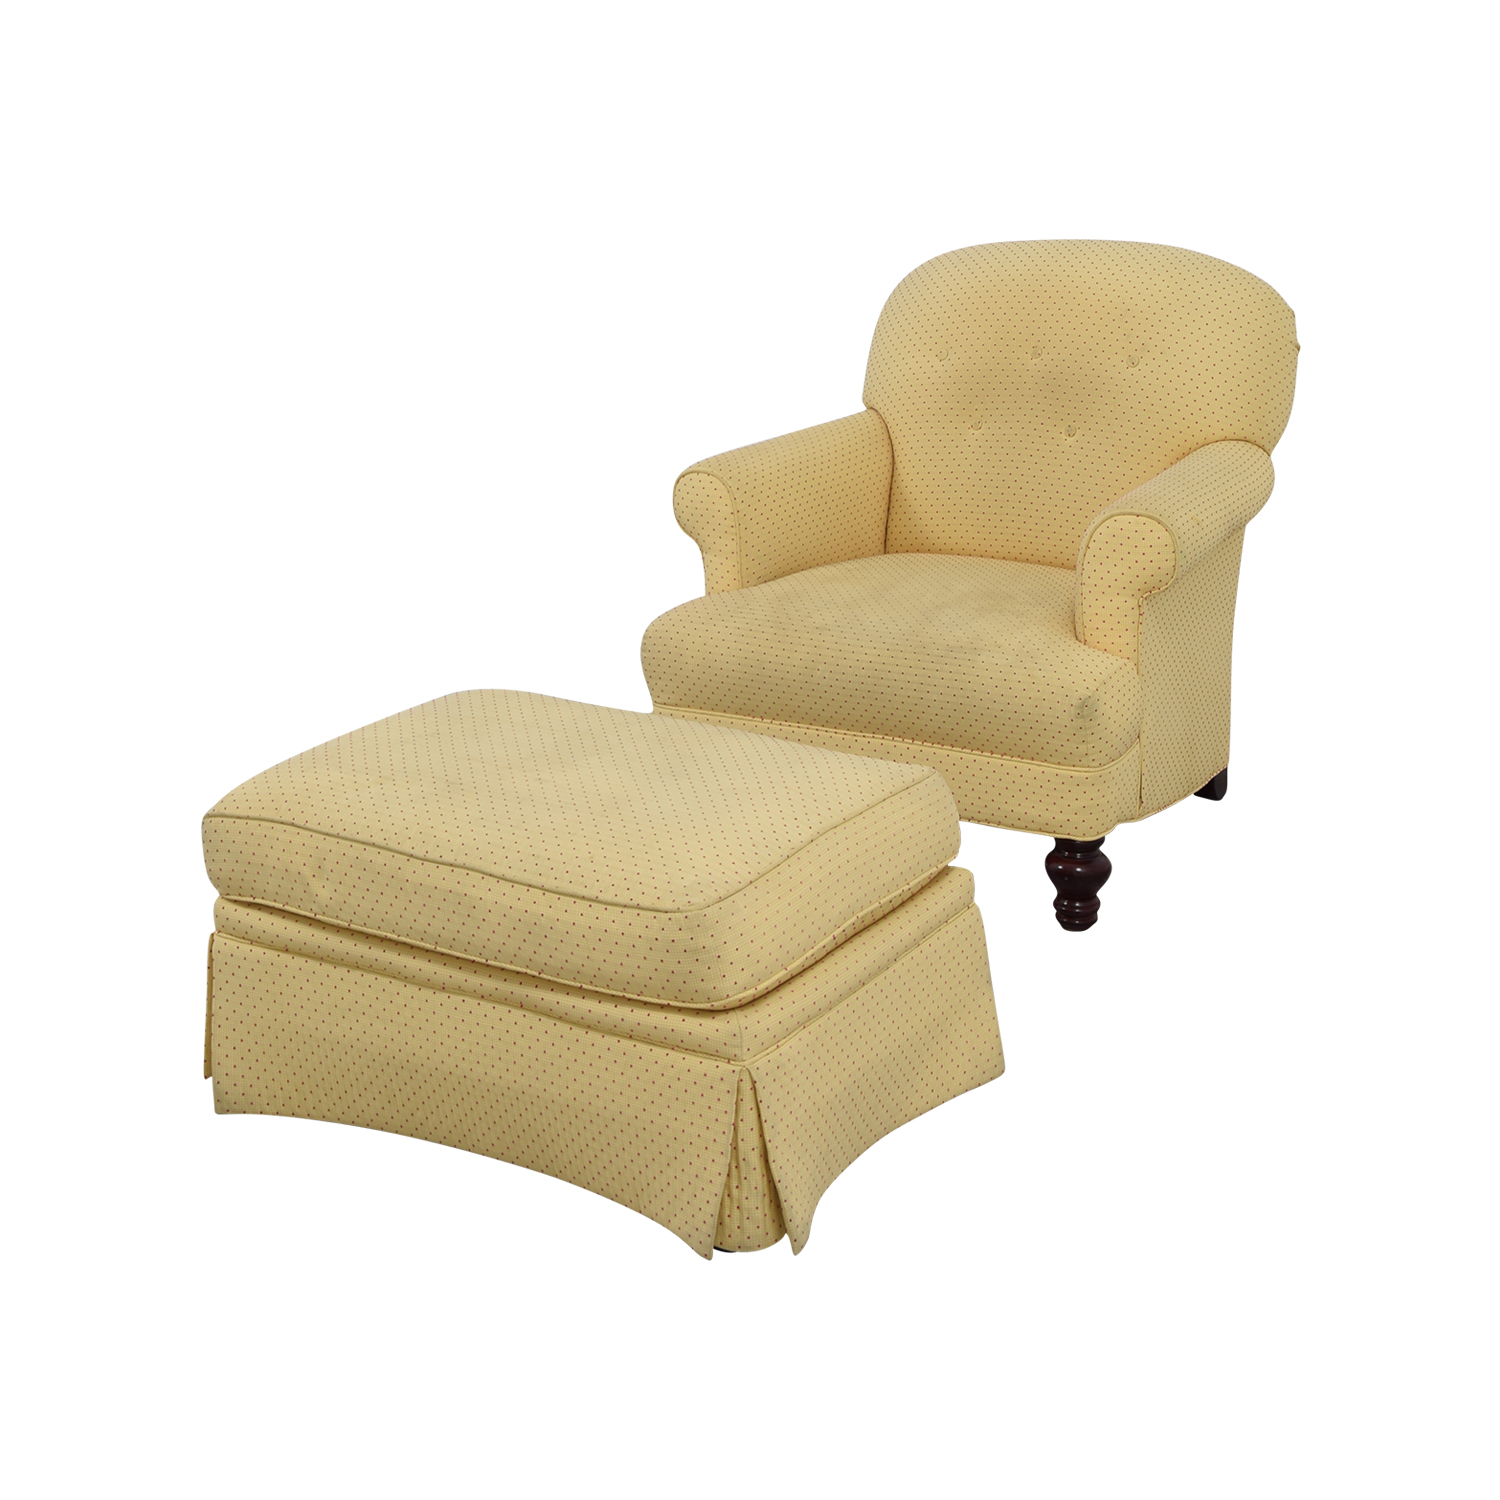 Small Chair With Ottoman 90 Off Yellow Arm Chair With Ottoman Chairs